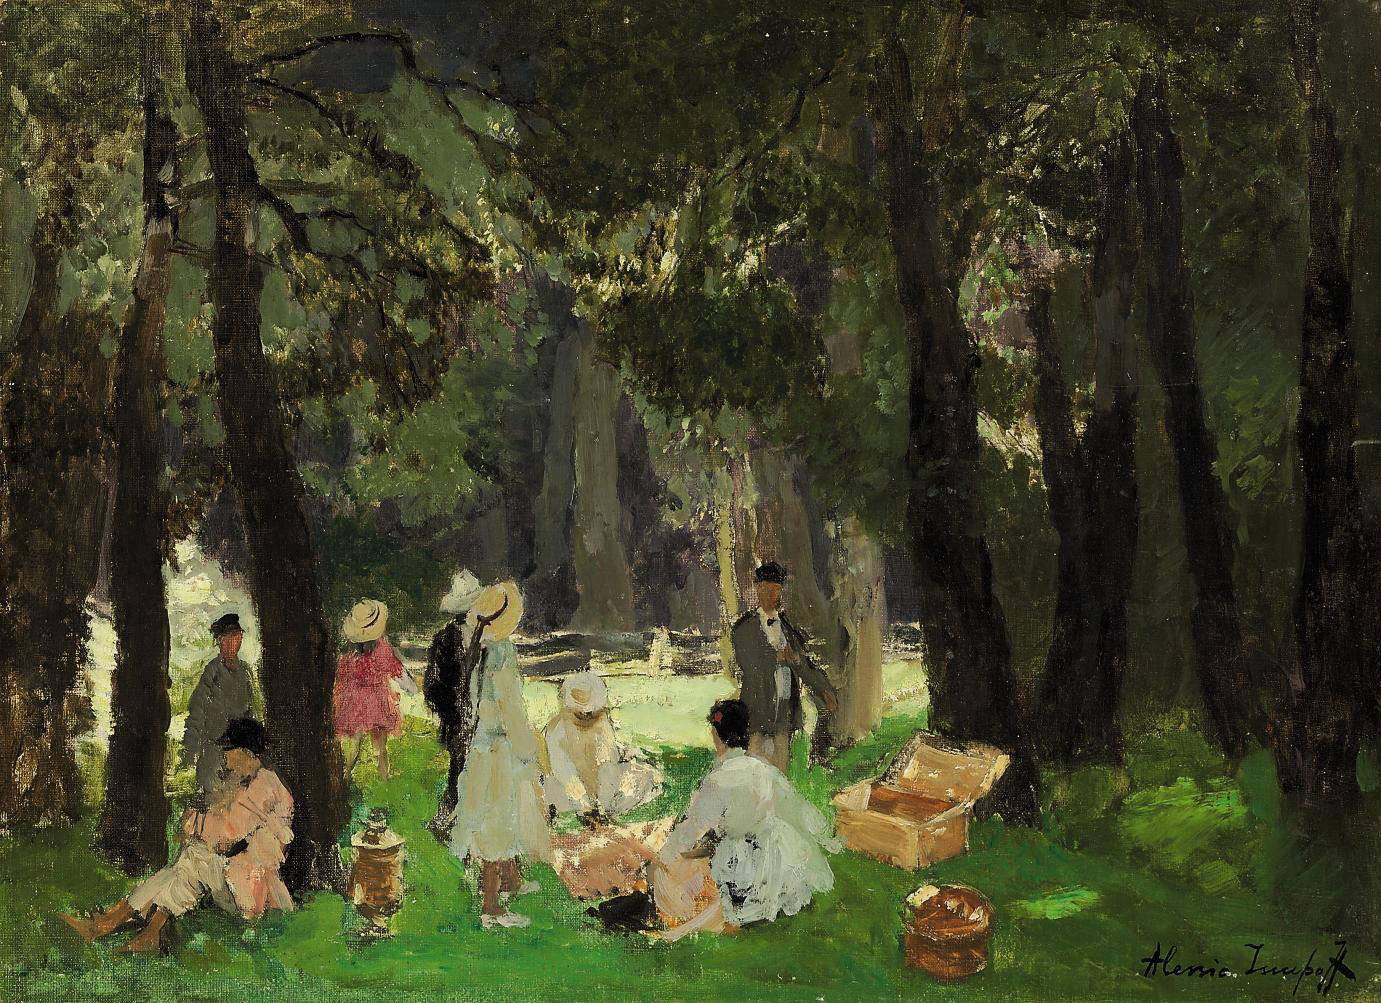 A picnic in the forest